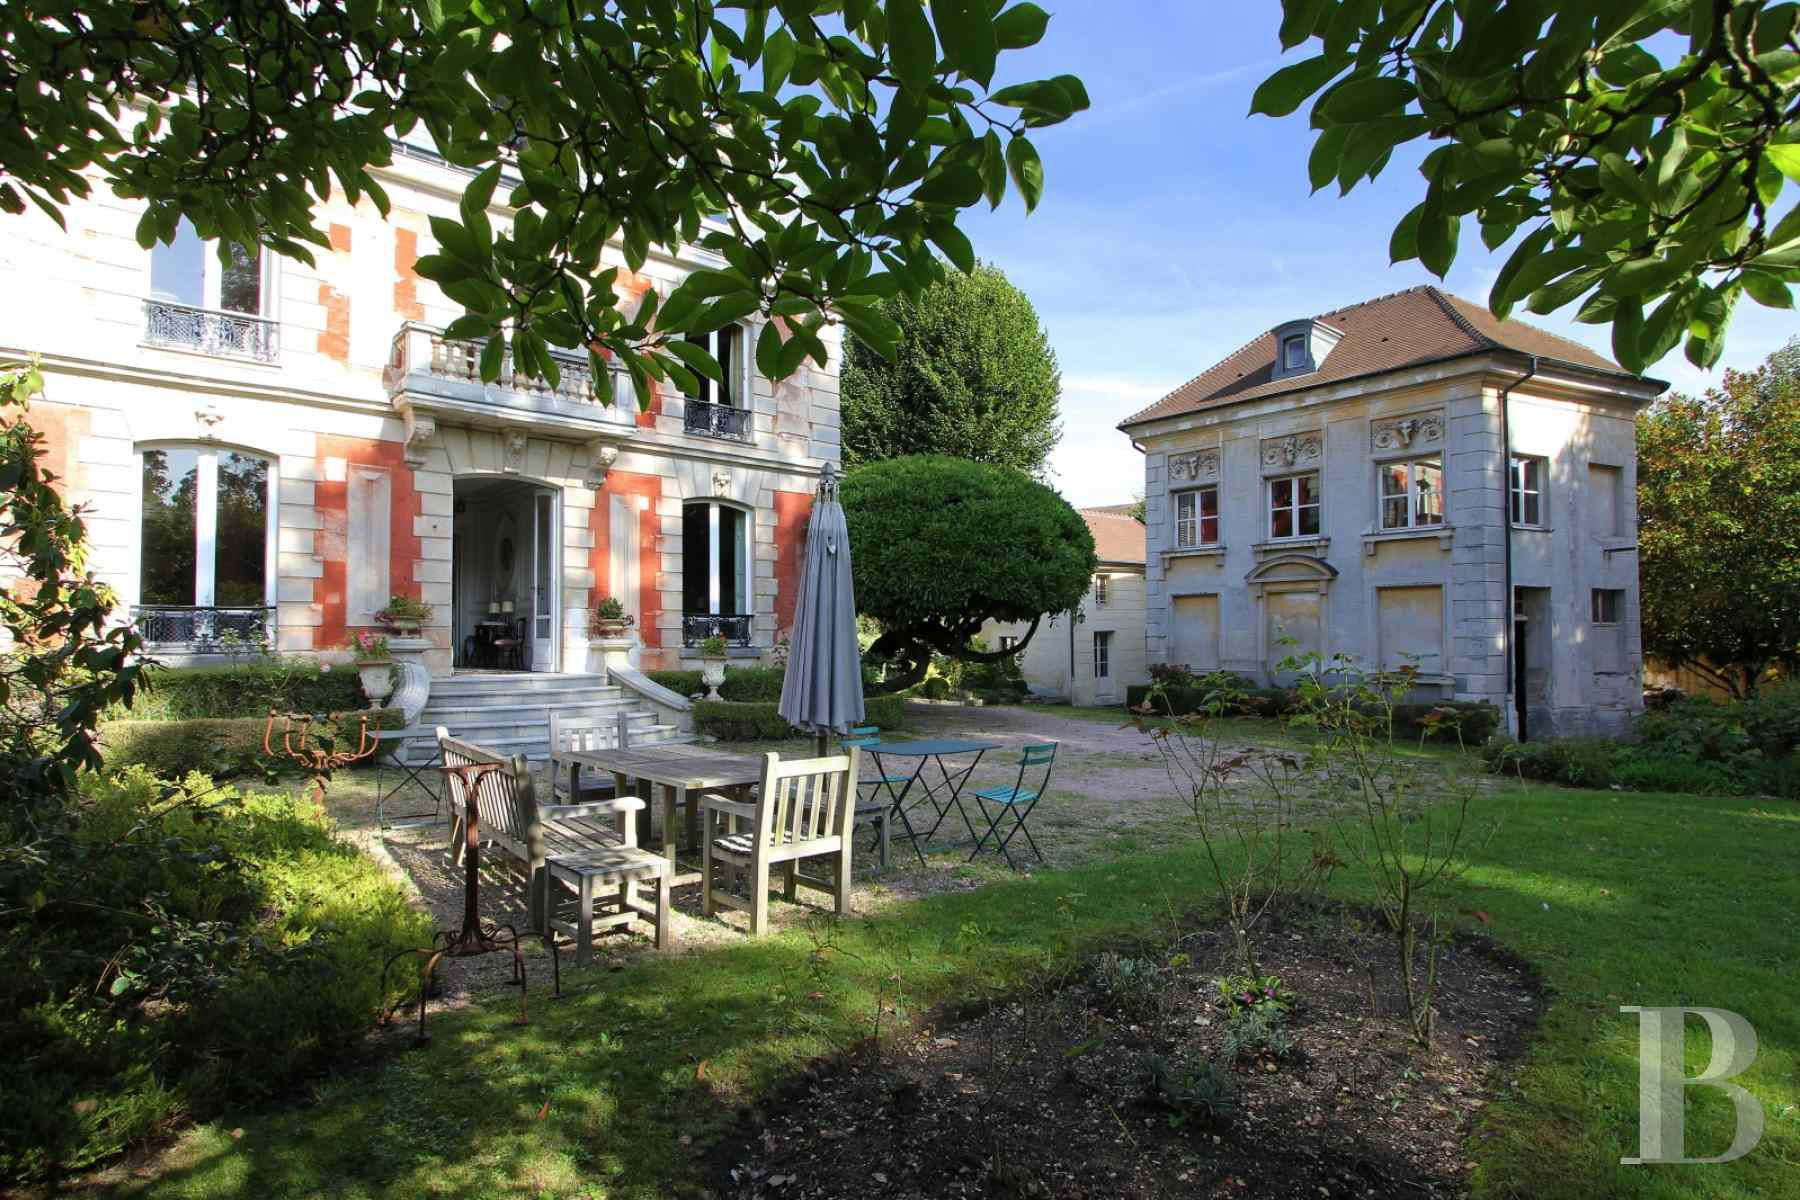 property for sale France paris antony property - 1 zoom